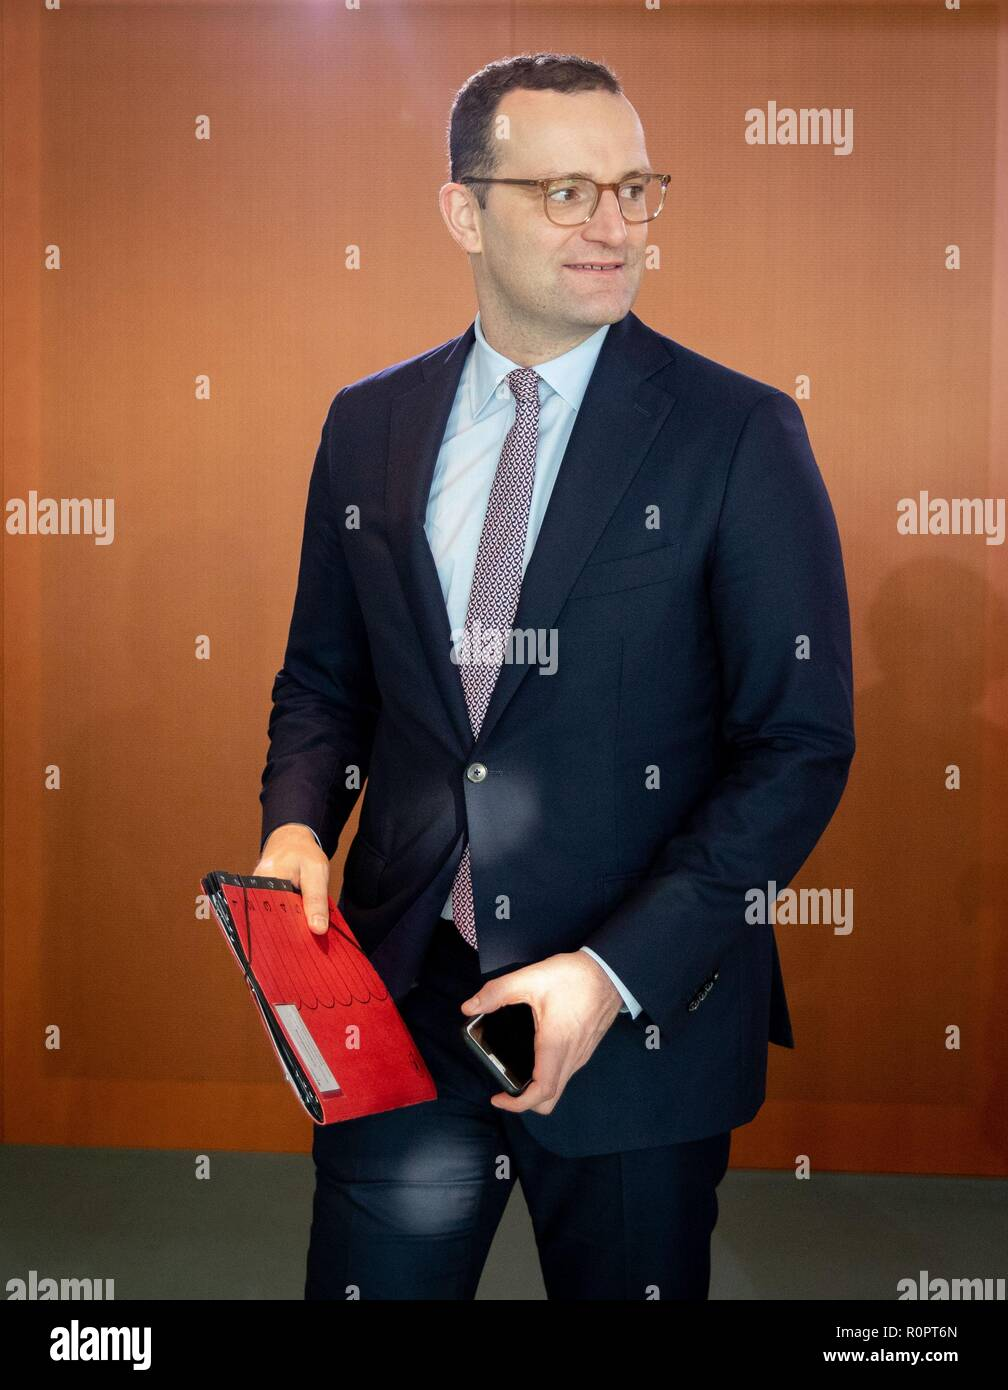 Berlin, Germany. 07th Nov, 2018. Jens Spahn (CDU), Federal Minister of Health, attends the Federal Cabinet meeting at the Federal Chancellery. Credit: Kay Nietfeld/dpa/Alamy Live News - Stock Image